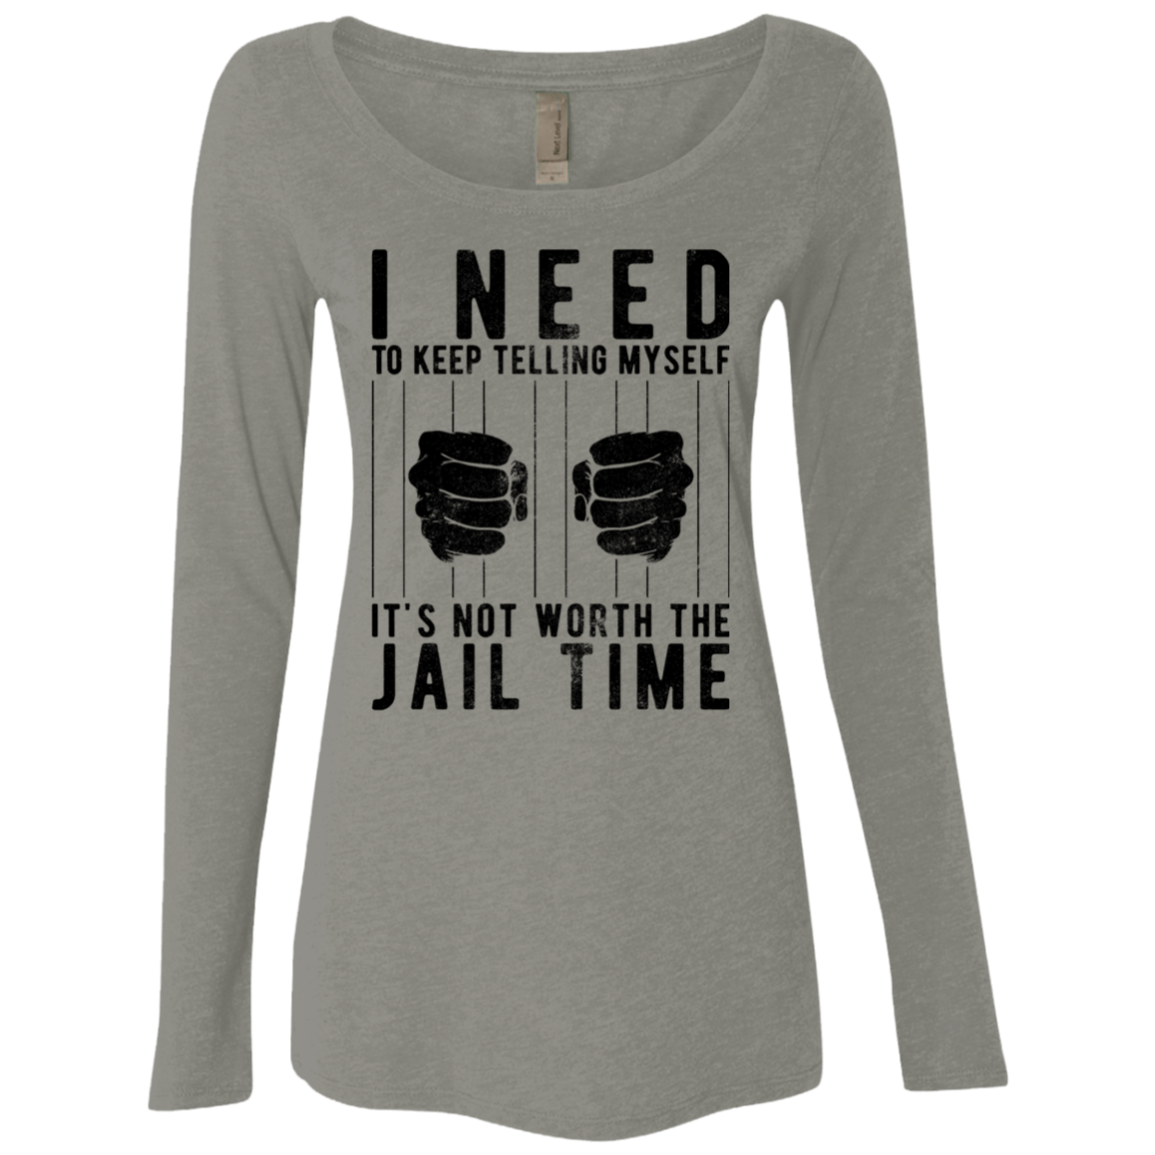 I Need To Keep Tellng Myself It's Not Worth The Jail Time Women's Long Sleeve Tee